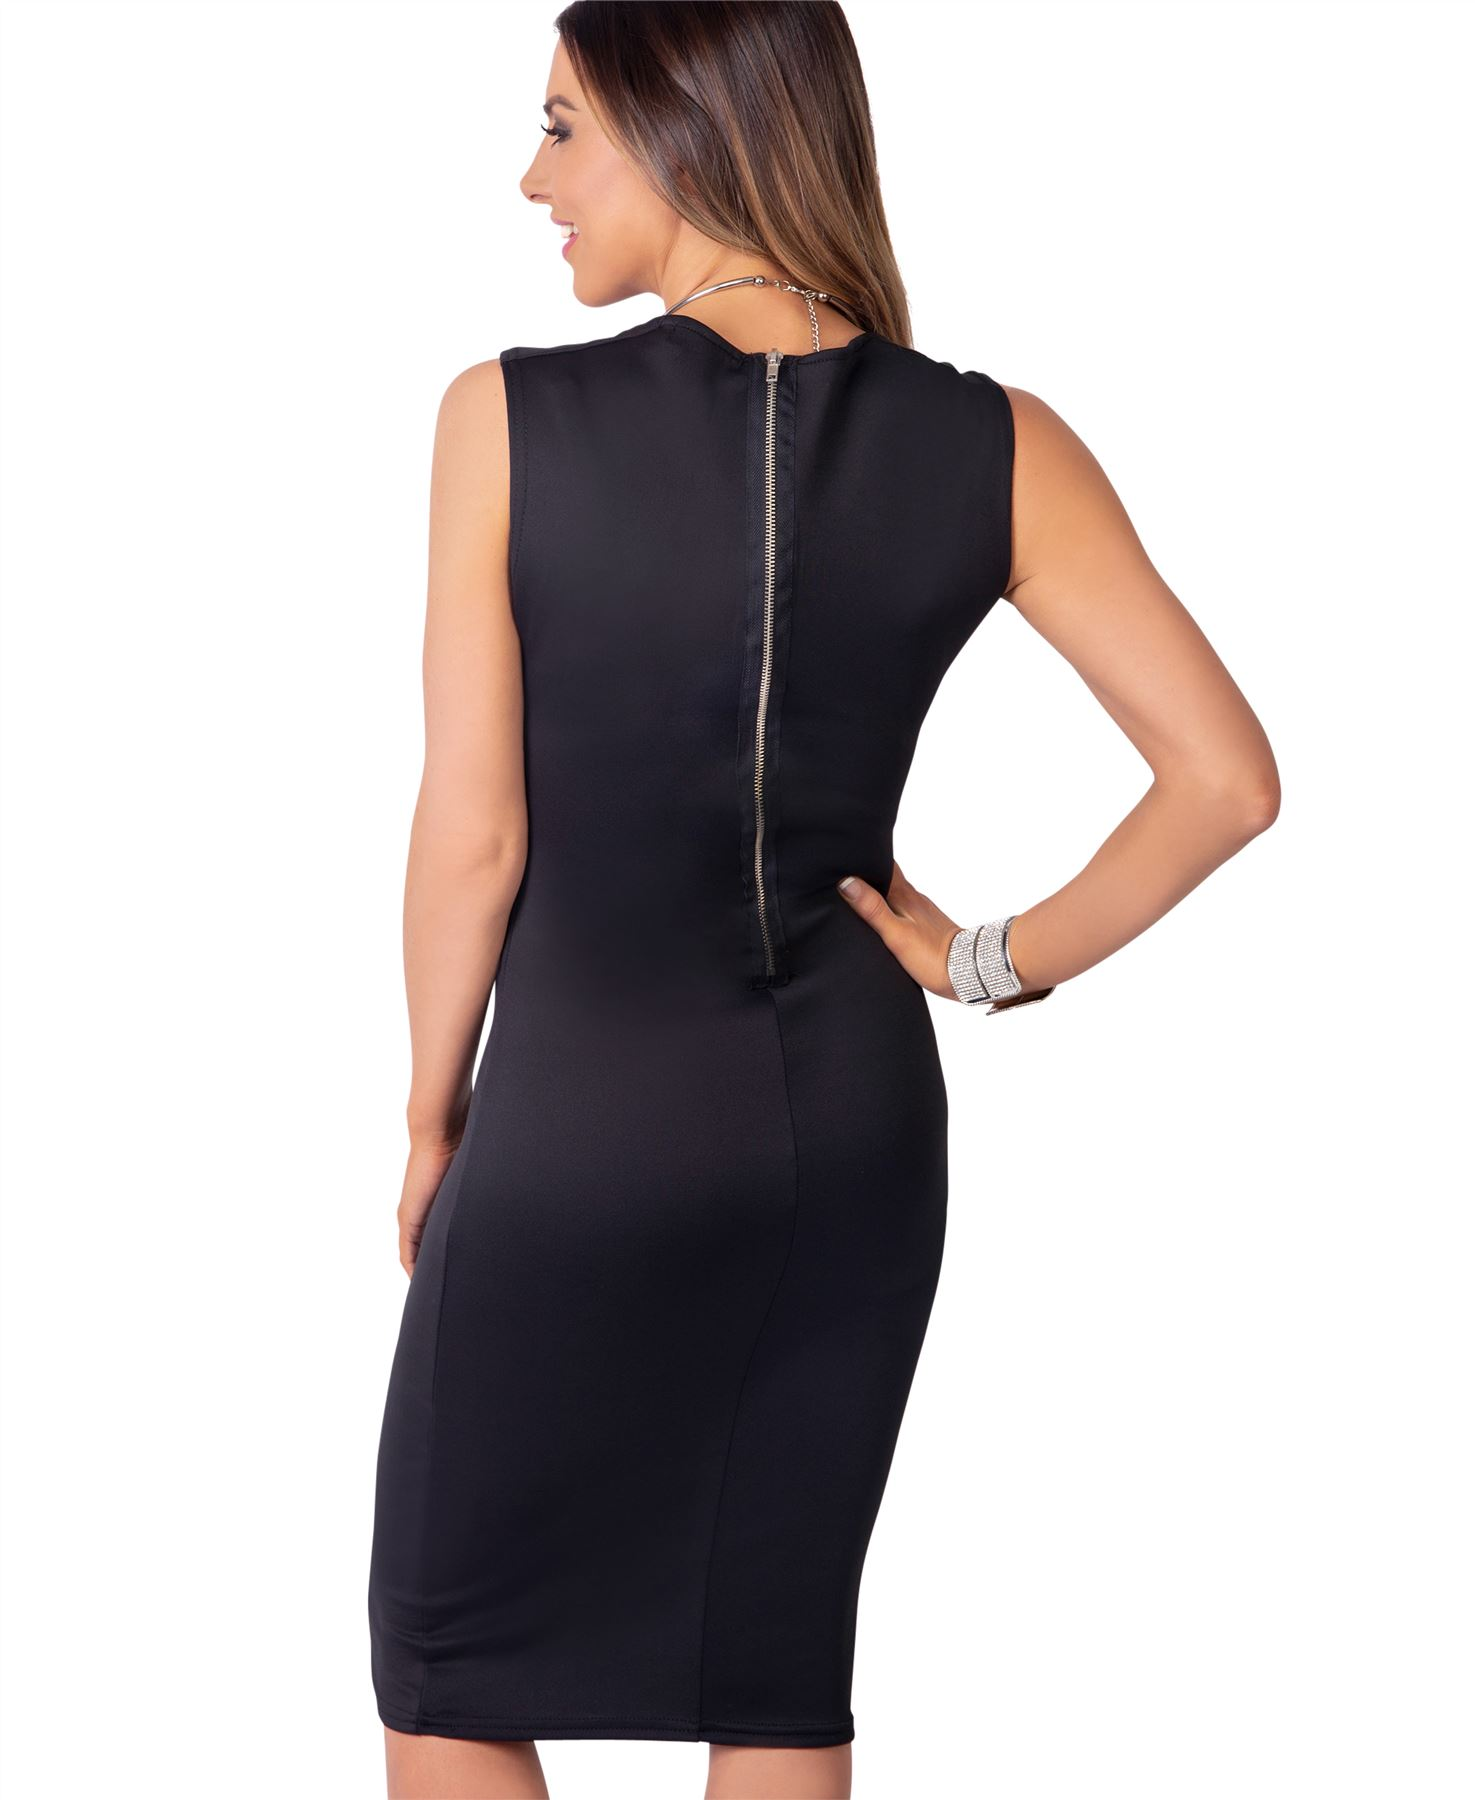 Womens-Pencil-Midi-Bodycon-Dress-Square-Neck-Panelled-Sexy-Zip-Party-Evening thumbnail 4